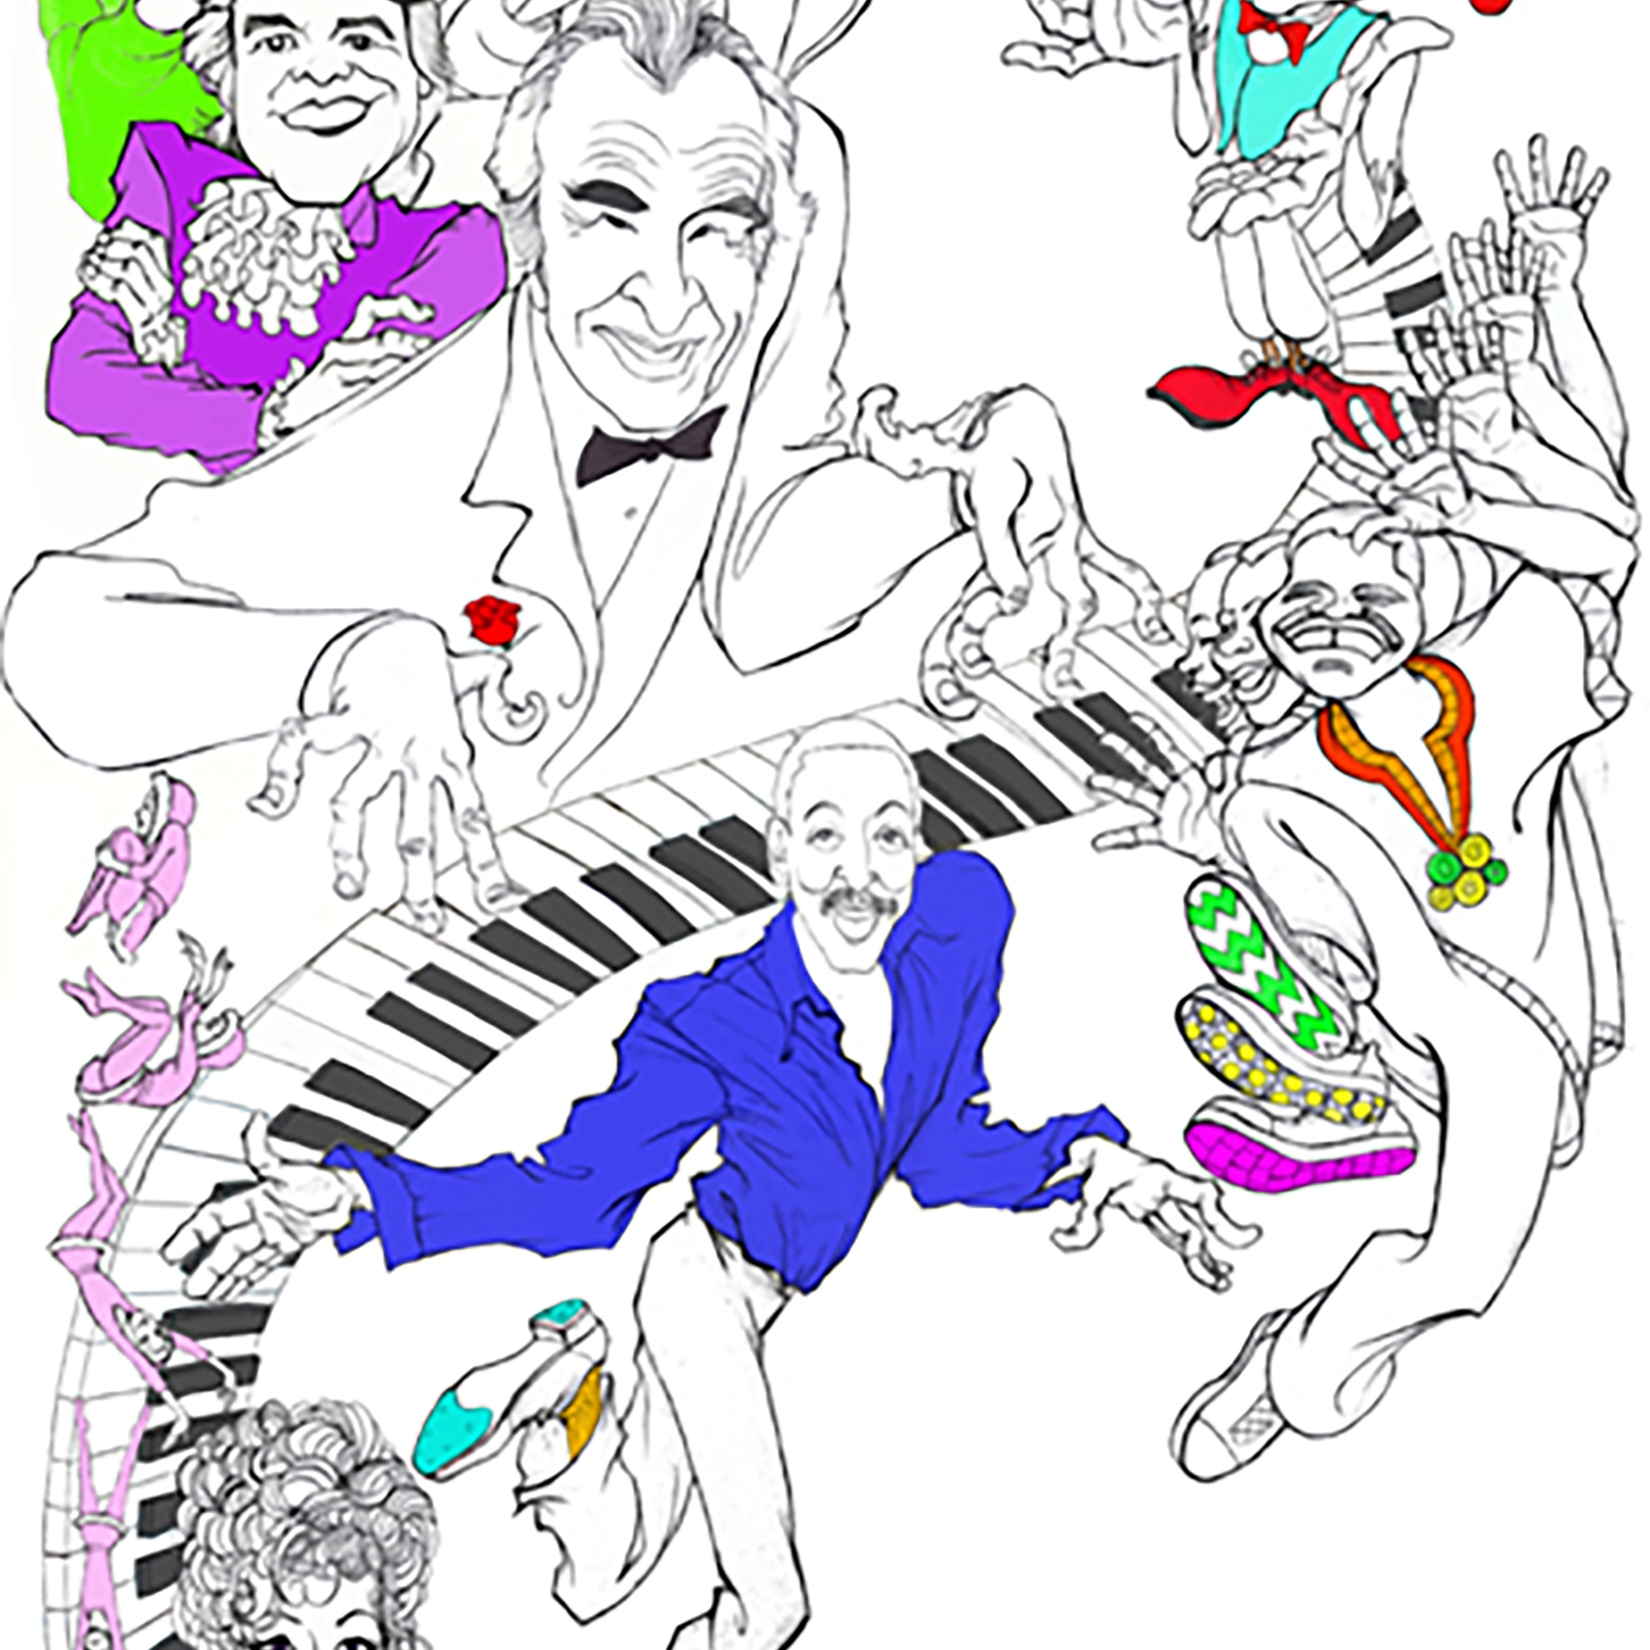 Drawings of the performers for Pepperdine University's Center for the Arts 2003-2004 season